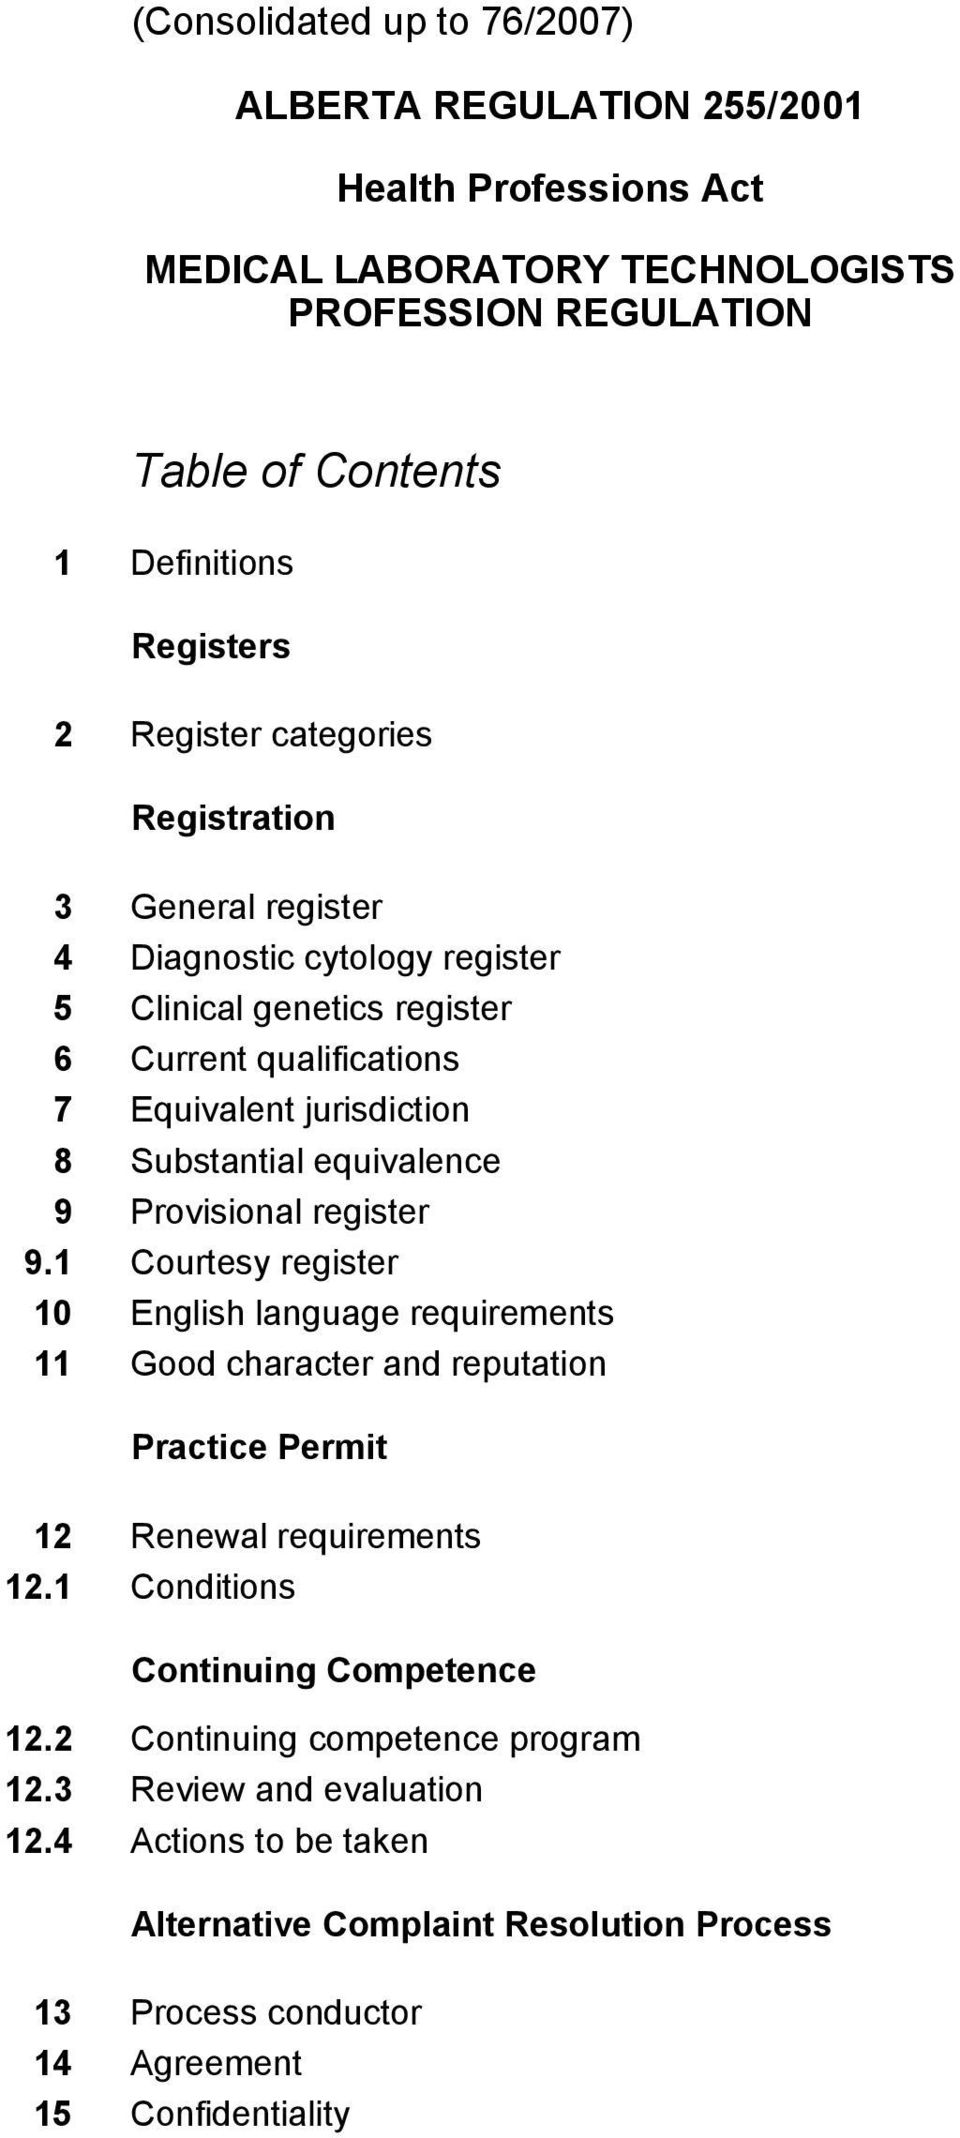 equivalence 9 Provisional register 9.1 Courtesy register 10 English language requirements 11 Good character and reputation Practice Permit 12 Renewal requirements 12.